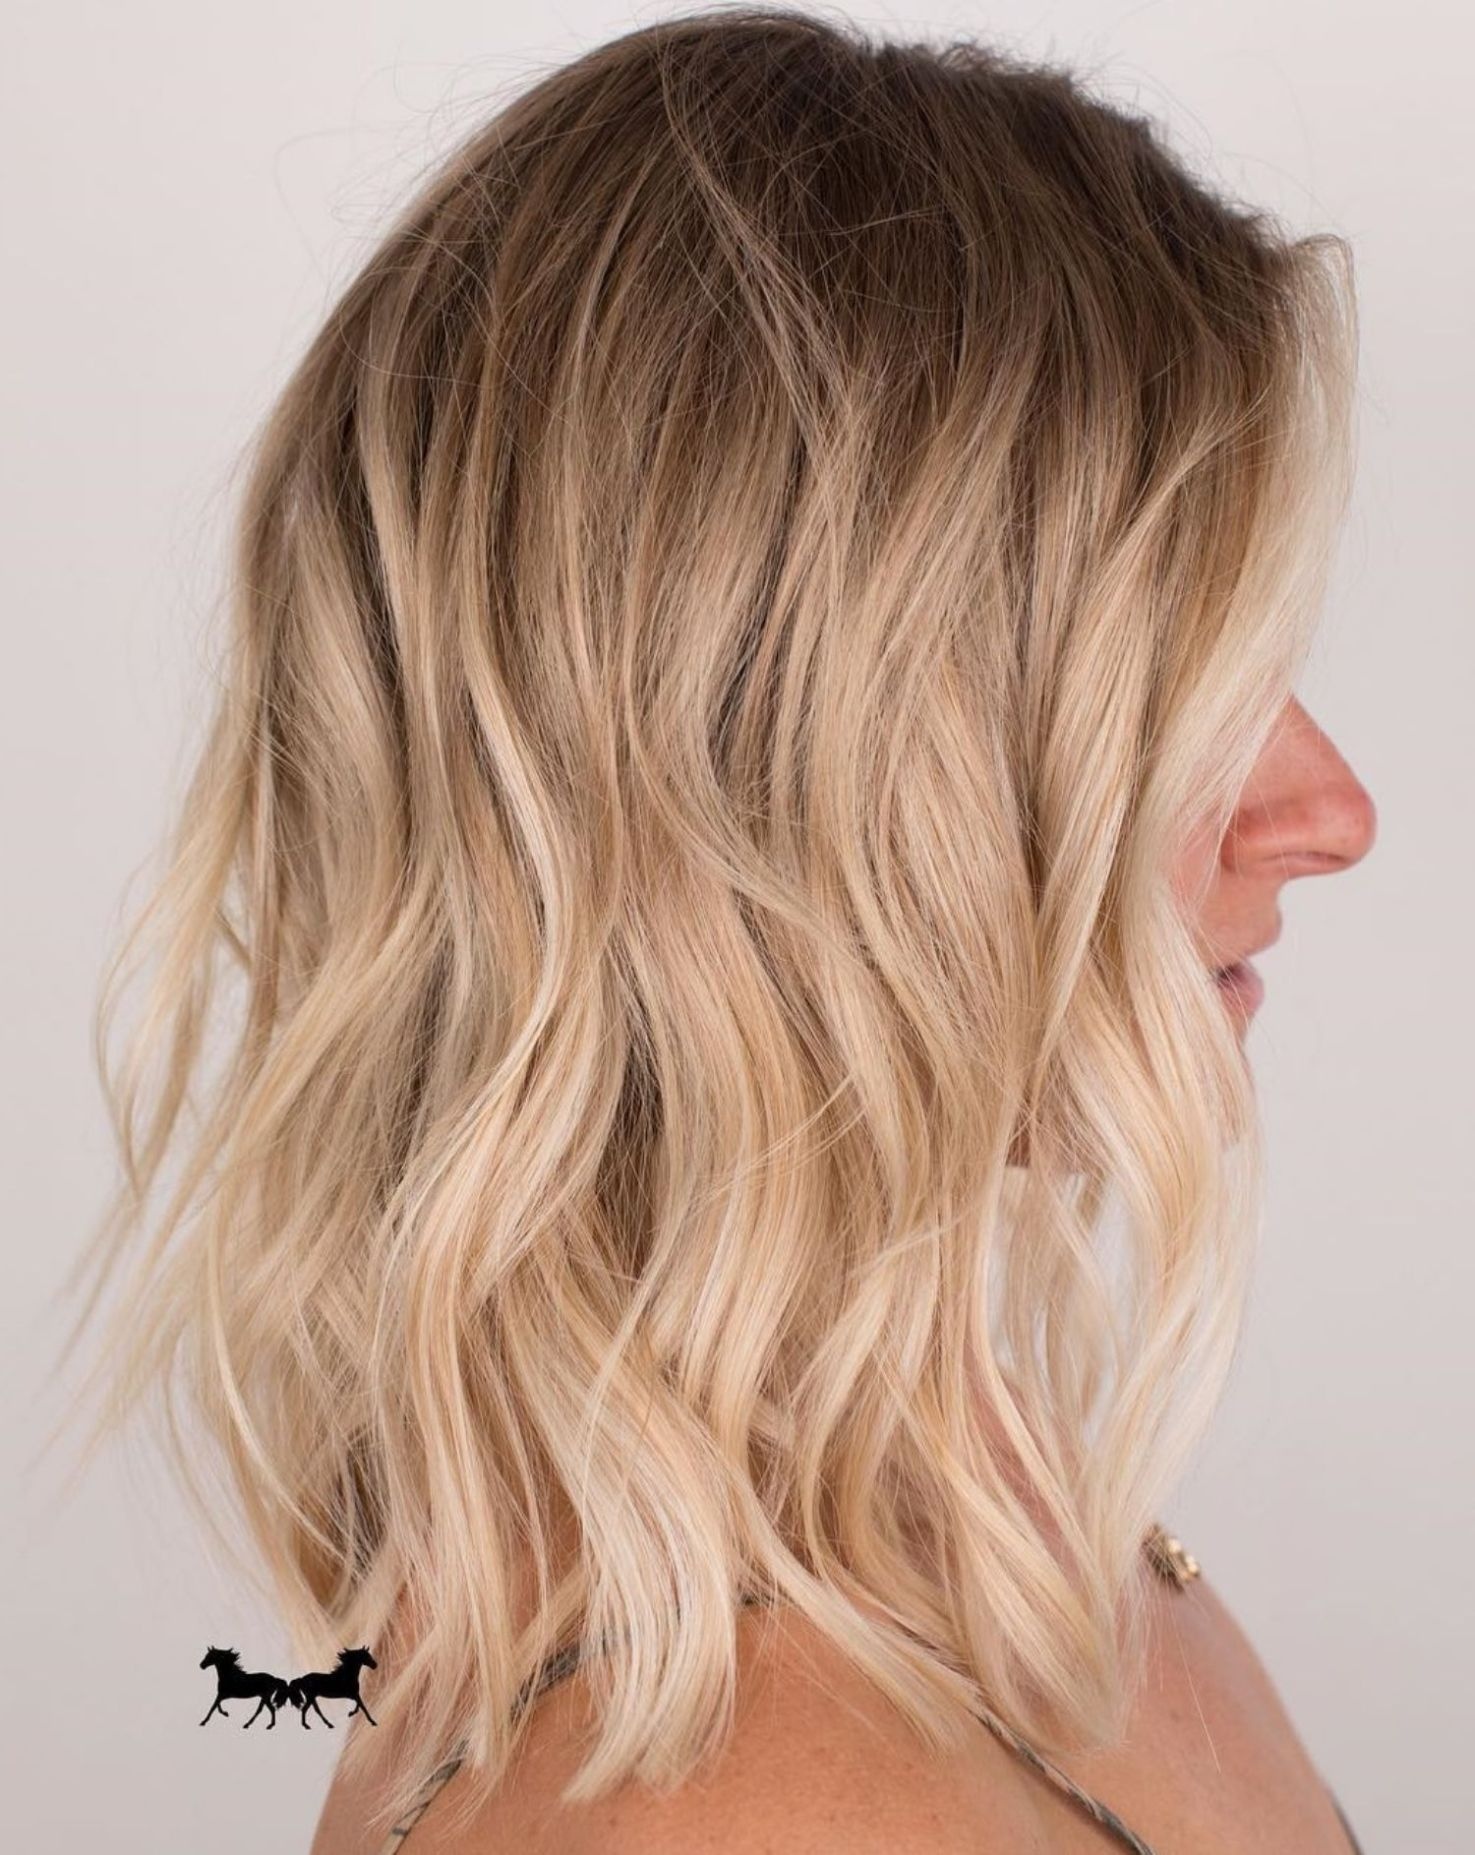 12 Perfect Medium Length Hairstyles for Thin Hair  Blonde wavy